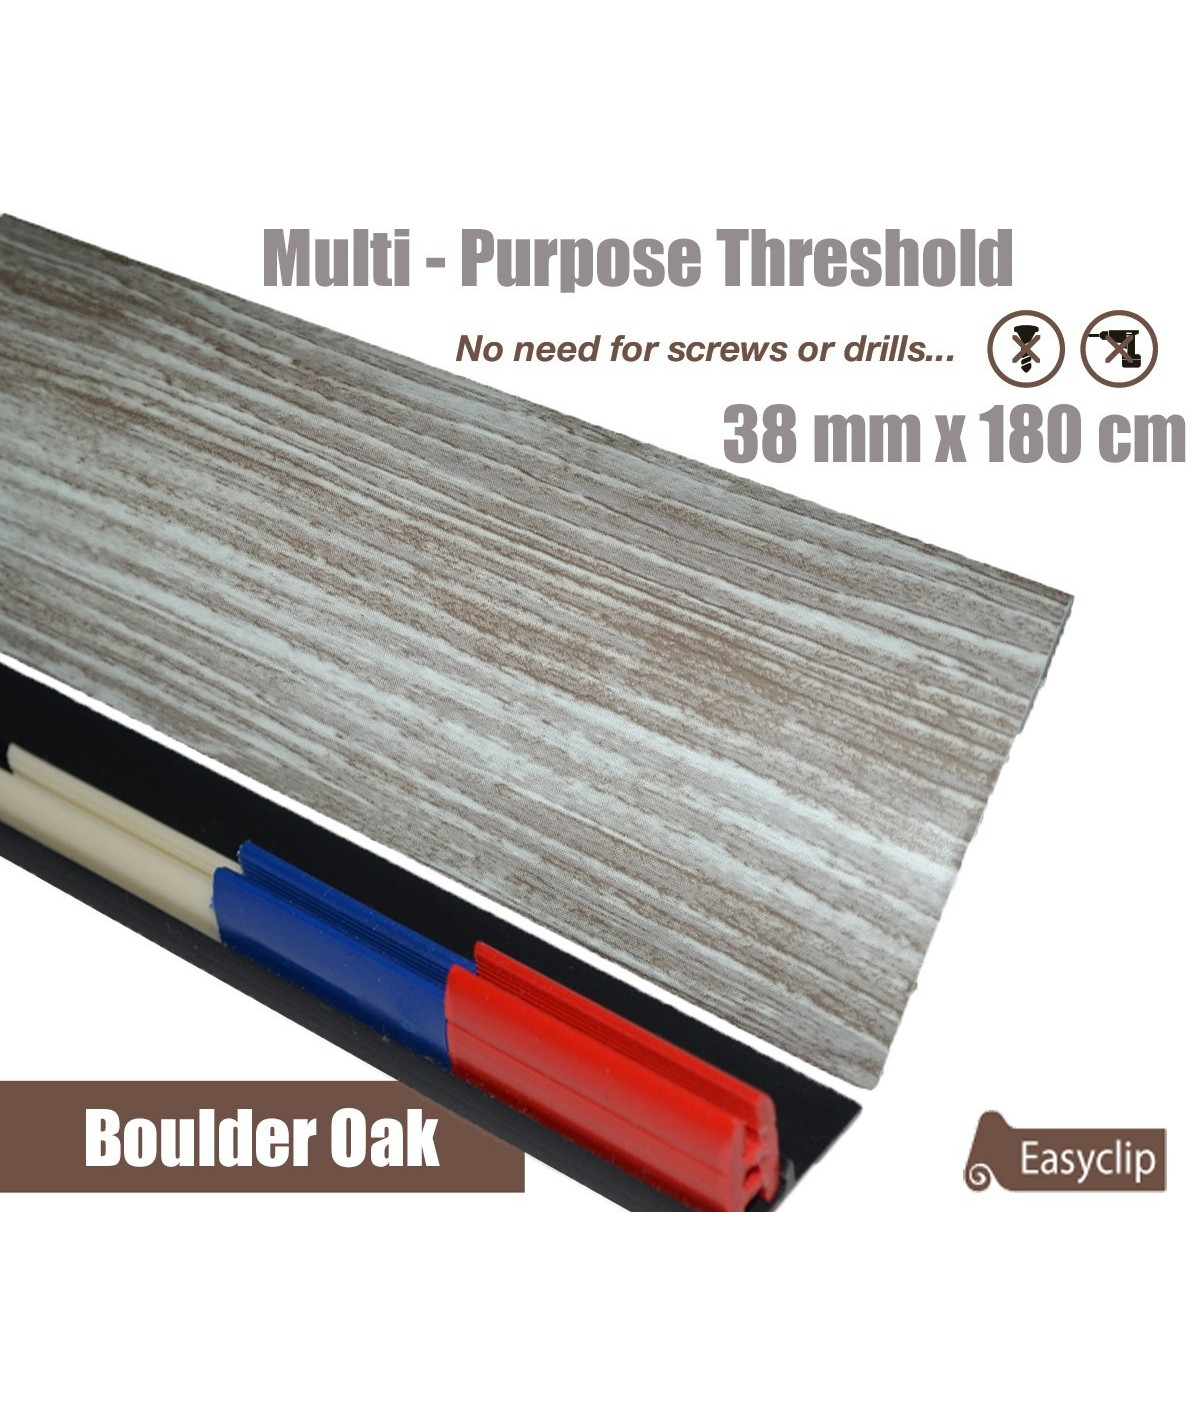 Boulder Oak Threshold Strip 38mm x 180cm laminate multi Purpose Adhesive Clip System